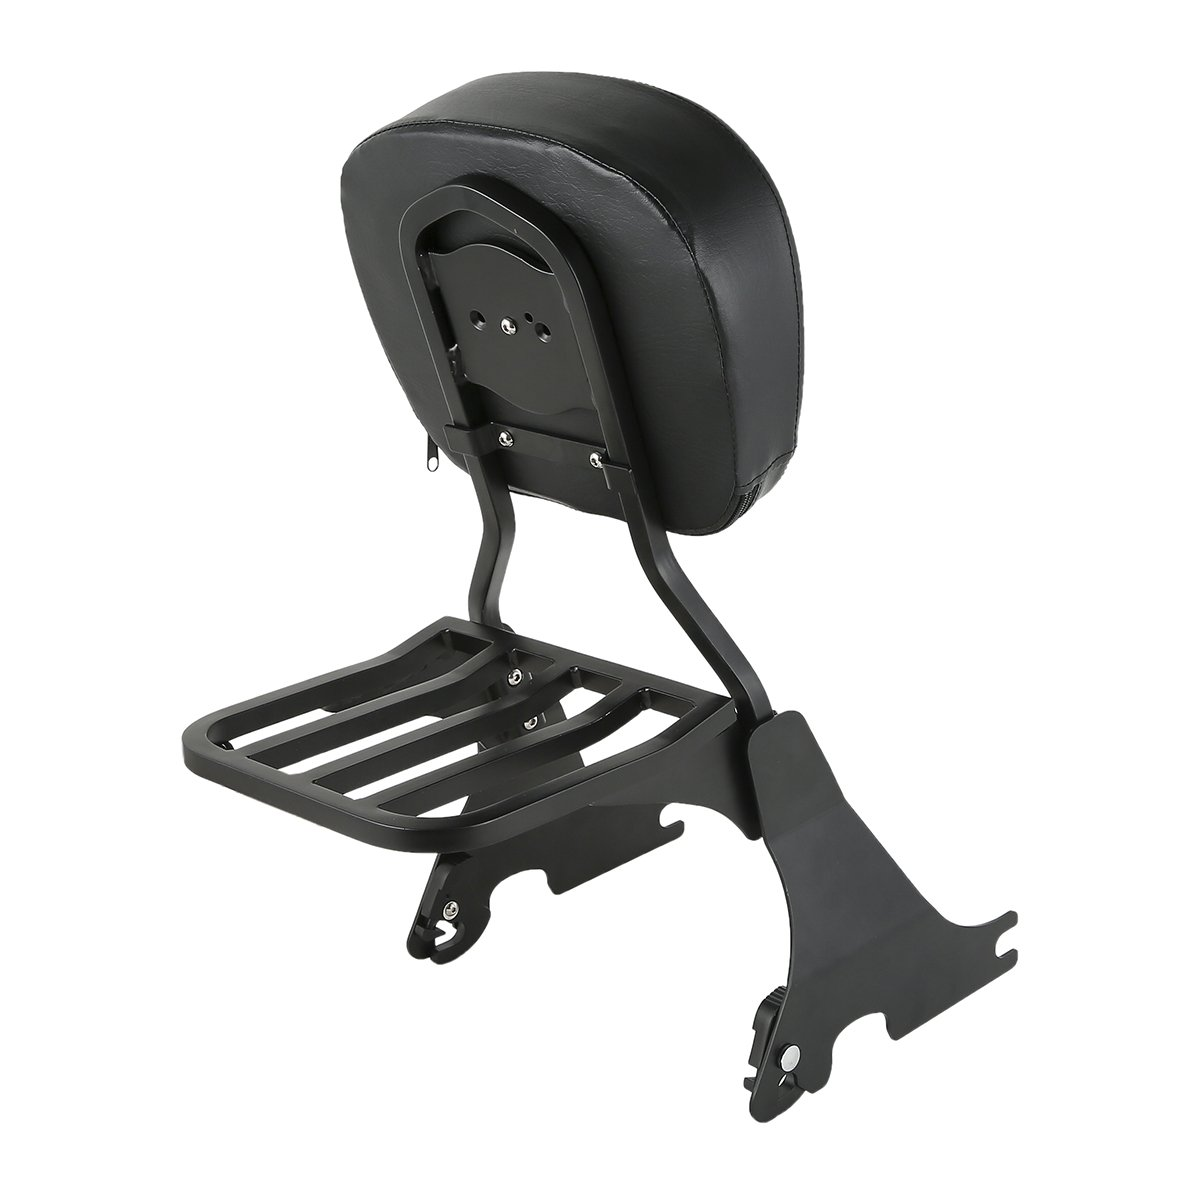 XFMT Sissy Bar Backrest w//Luggage Rack Compatible with Harley Sportster XL Iron 883 72 48 2004-2018